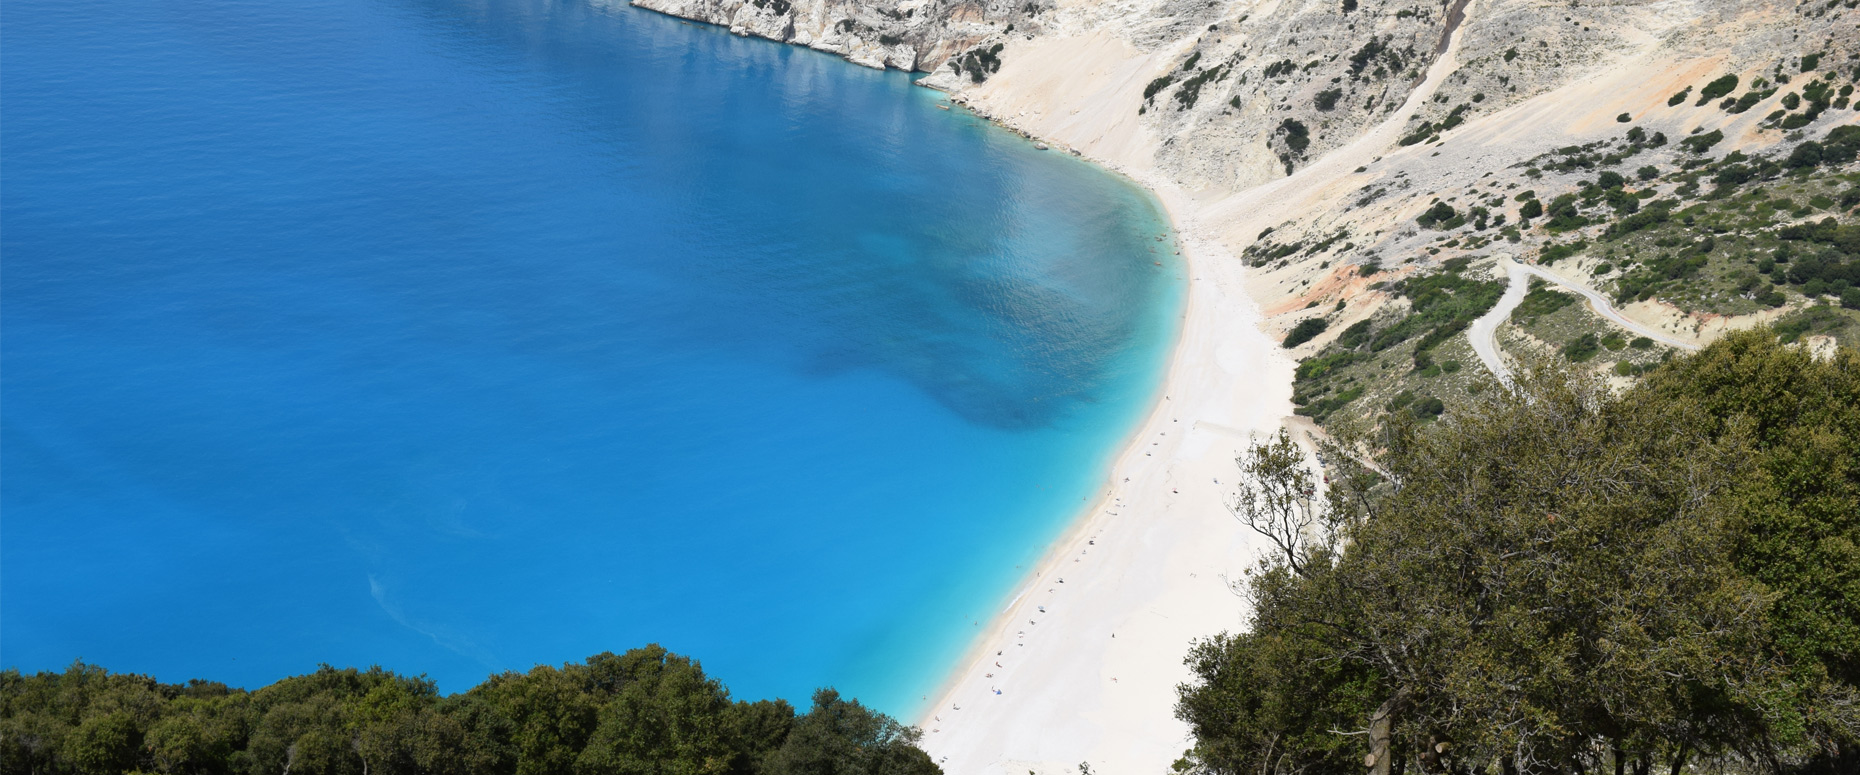 kefalonia_greece_01